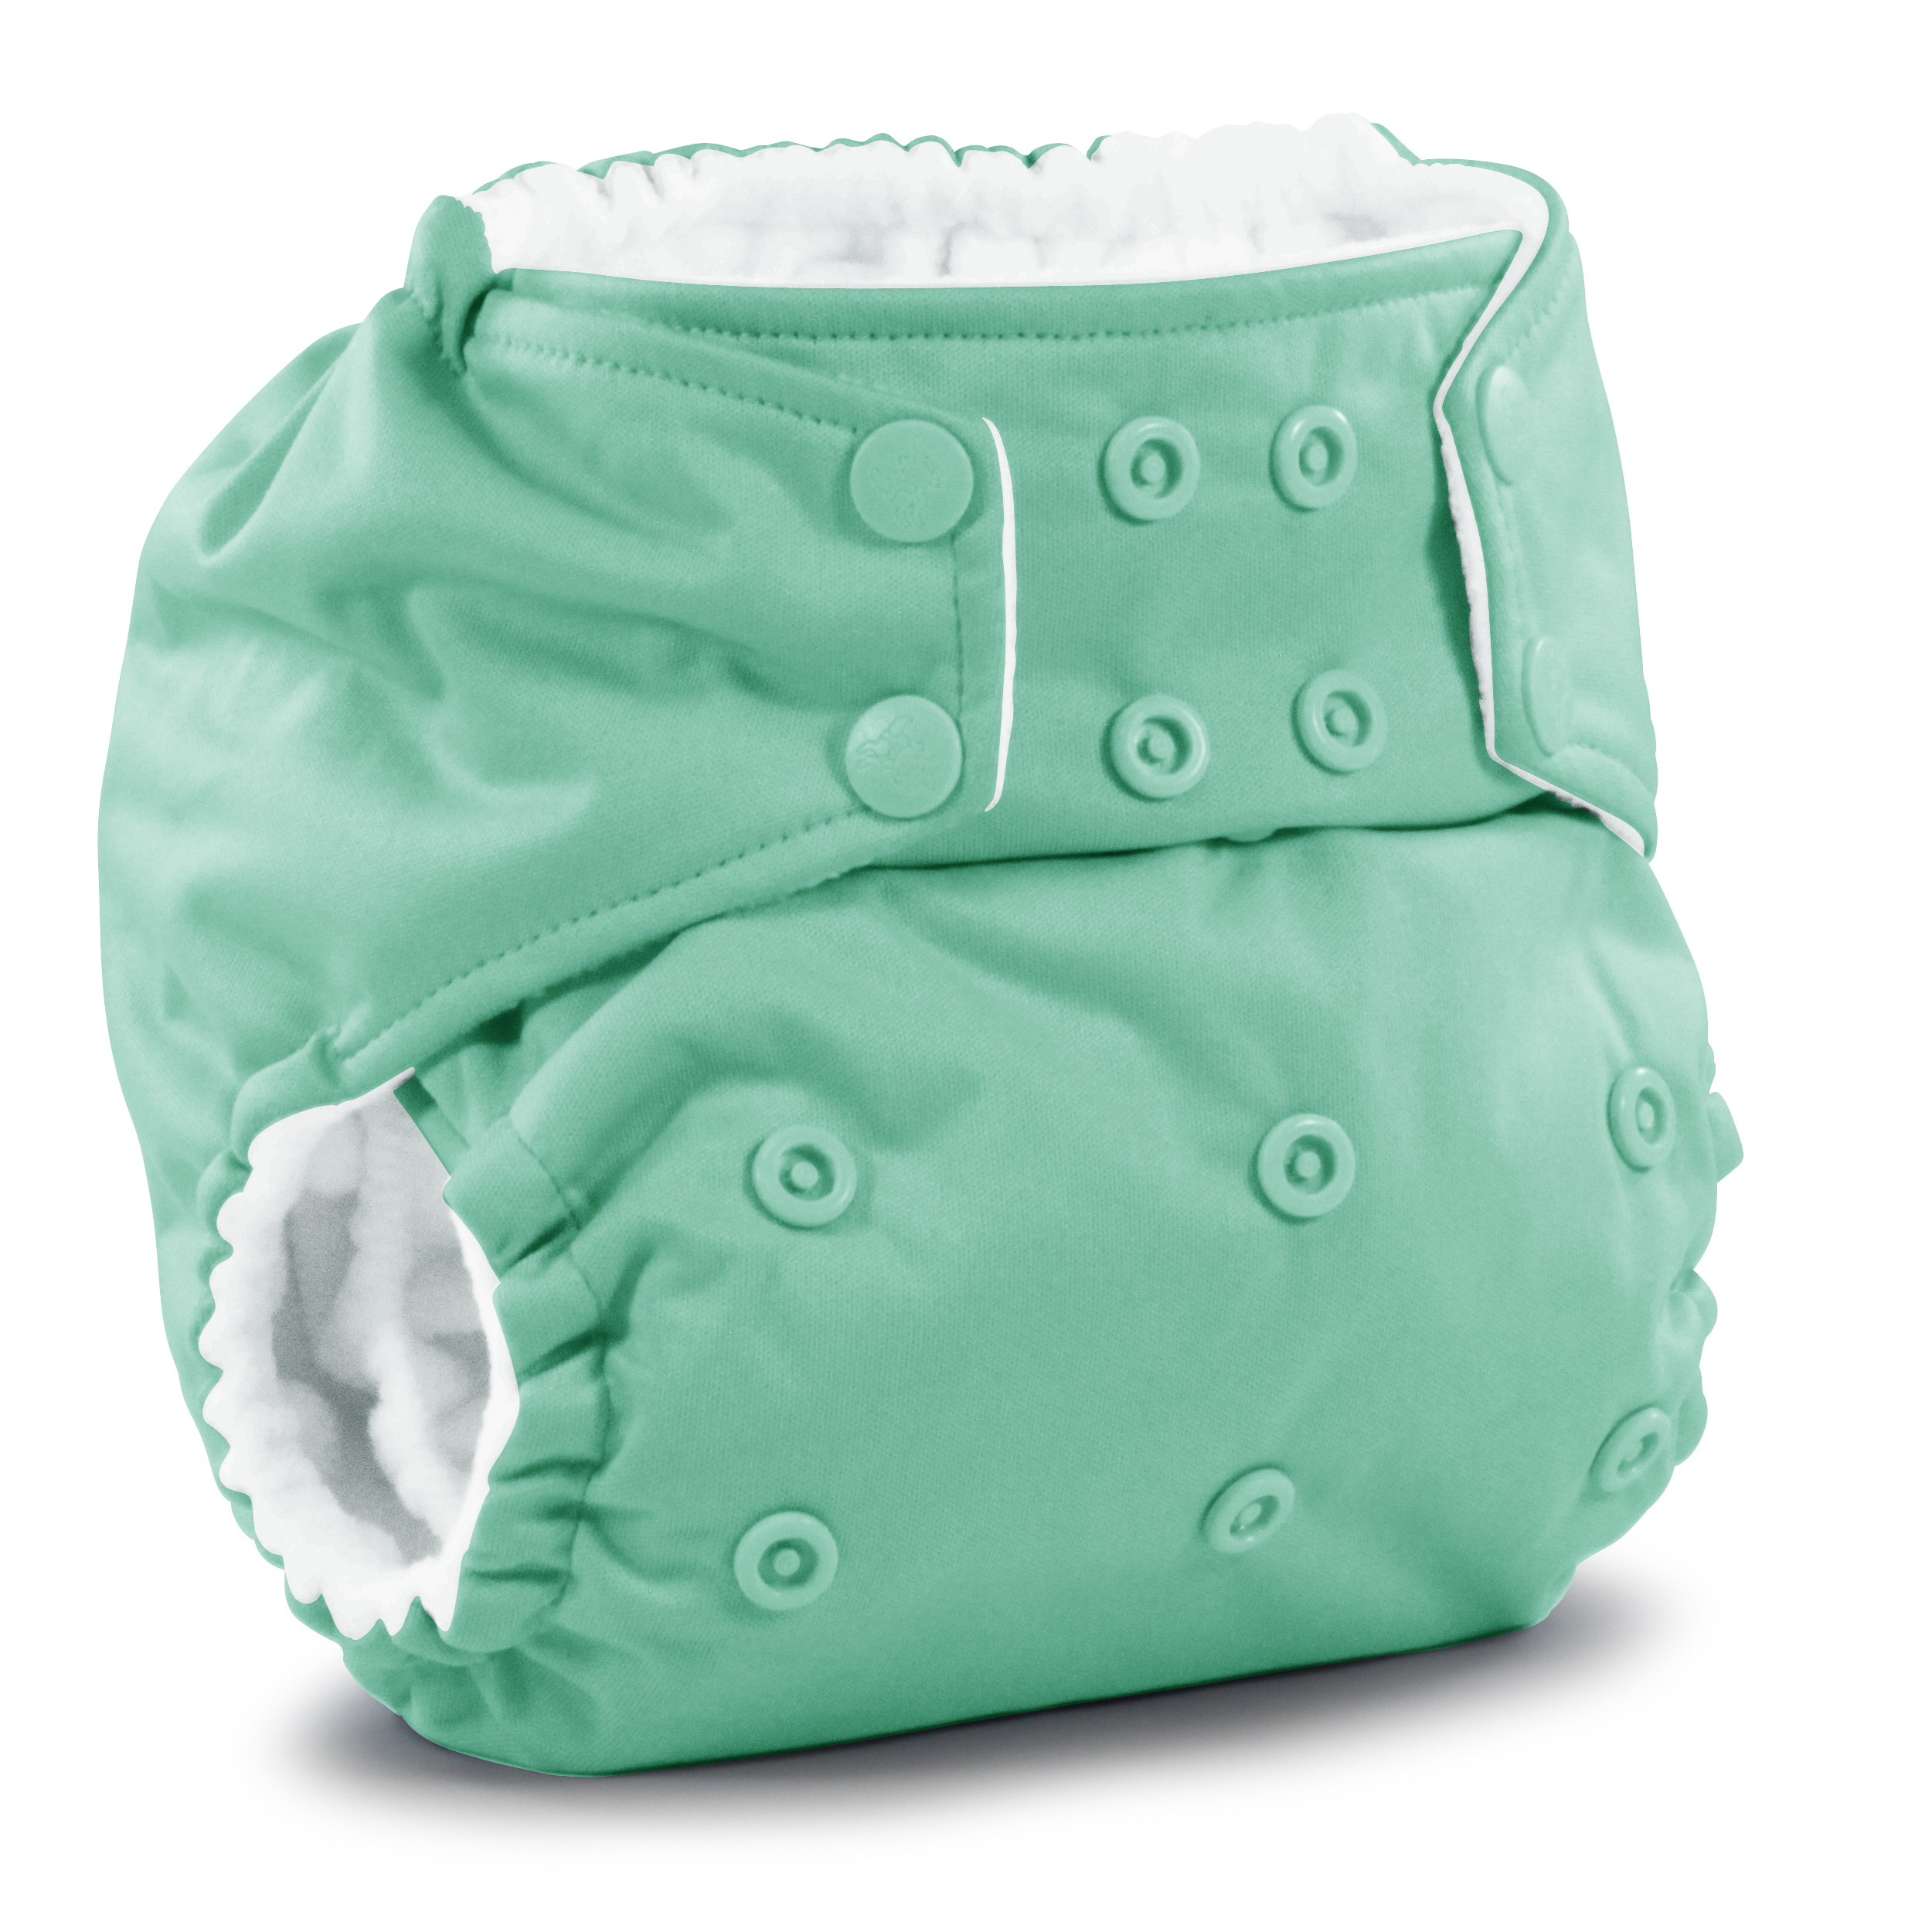 rumparooz cloth diaper - Sweet